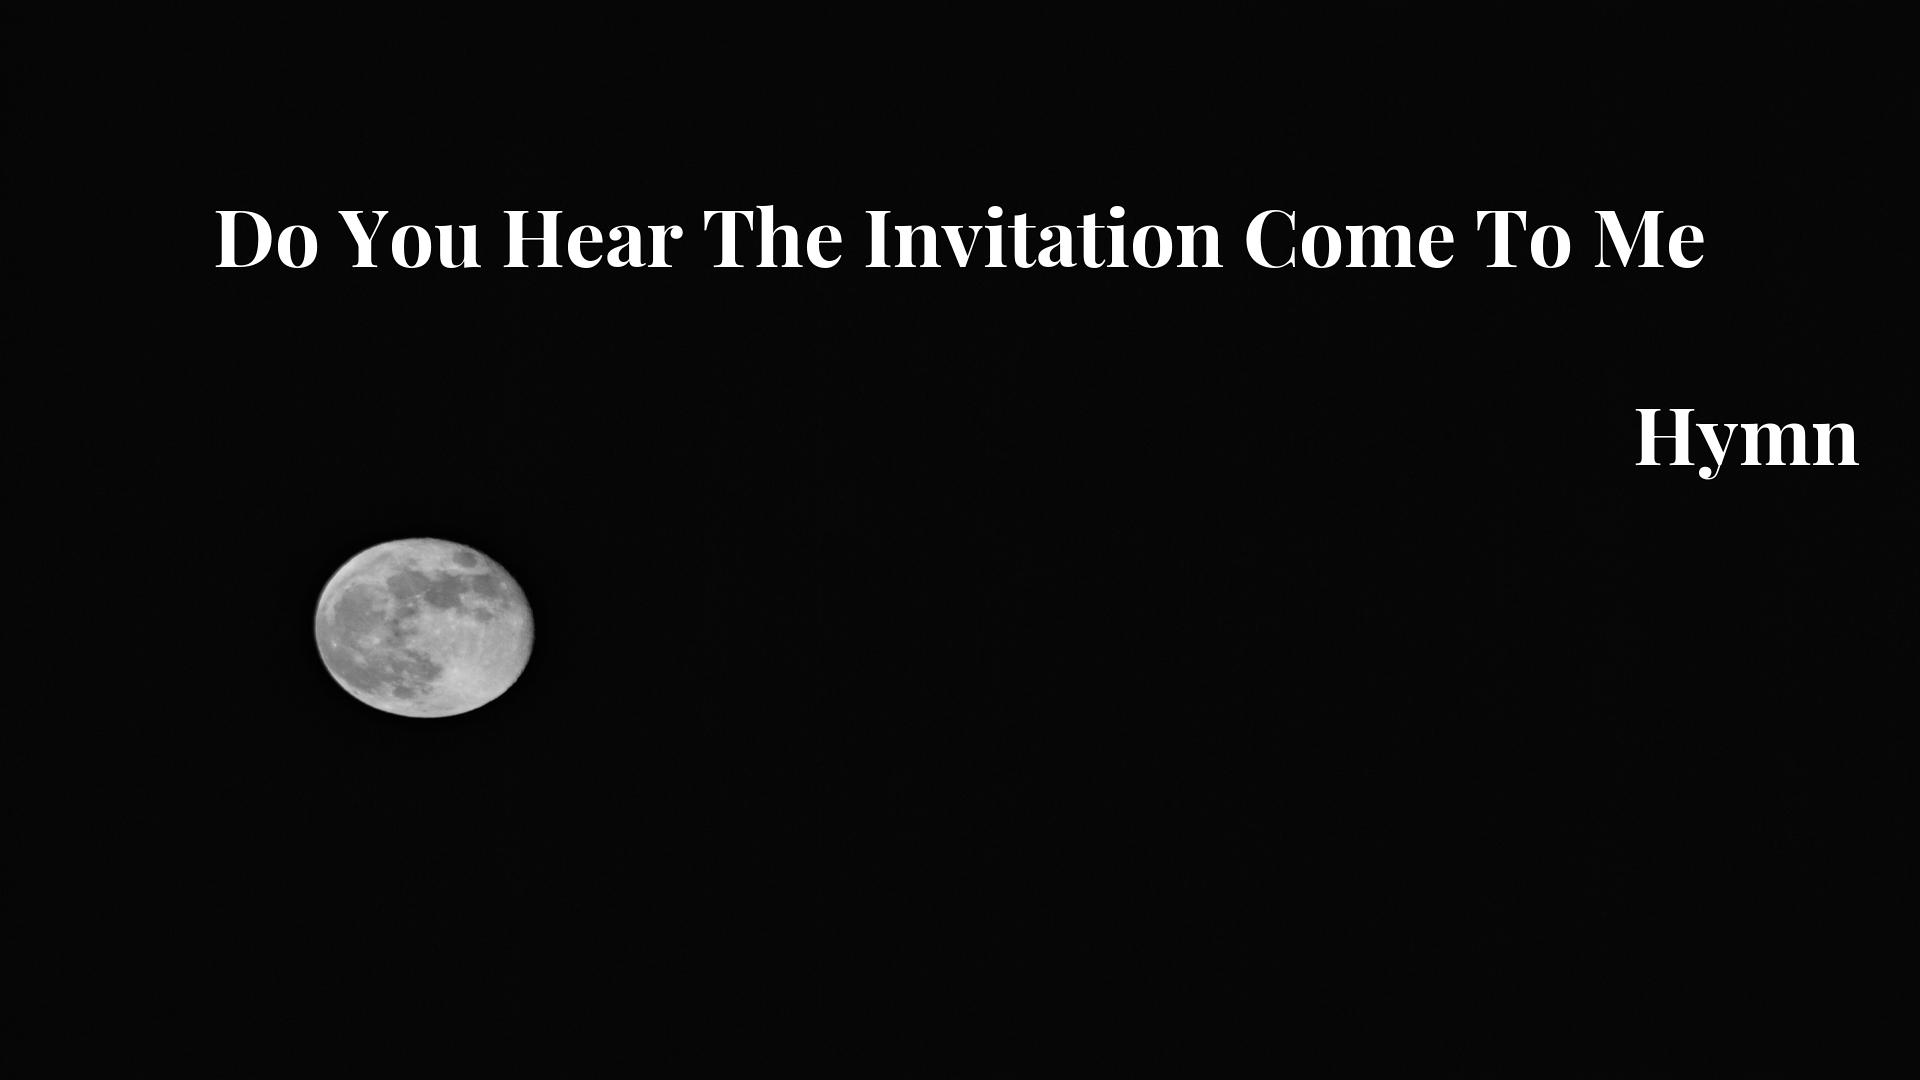 Do You Hear The Invitation Come To Me - Hymn